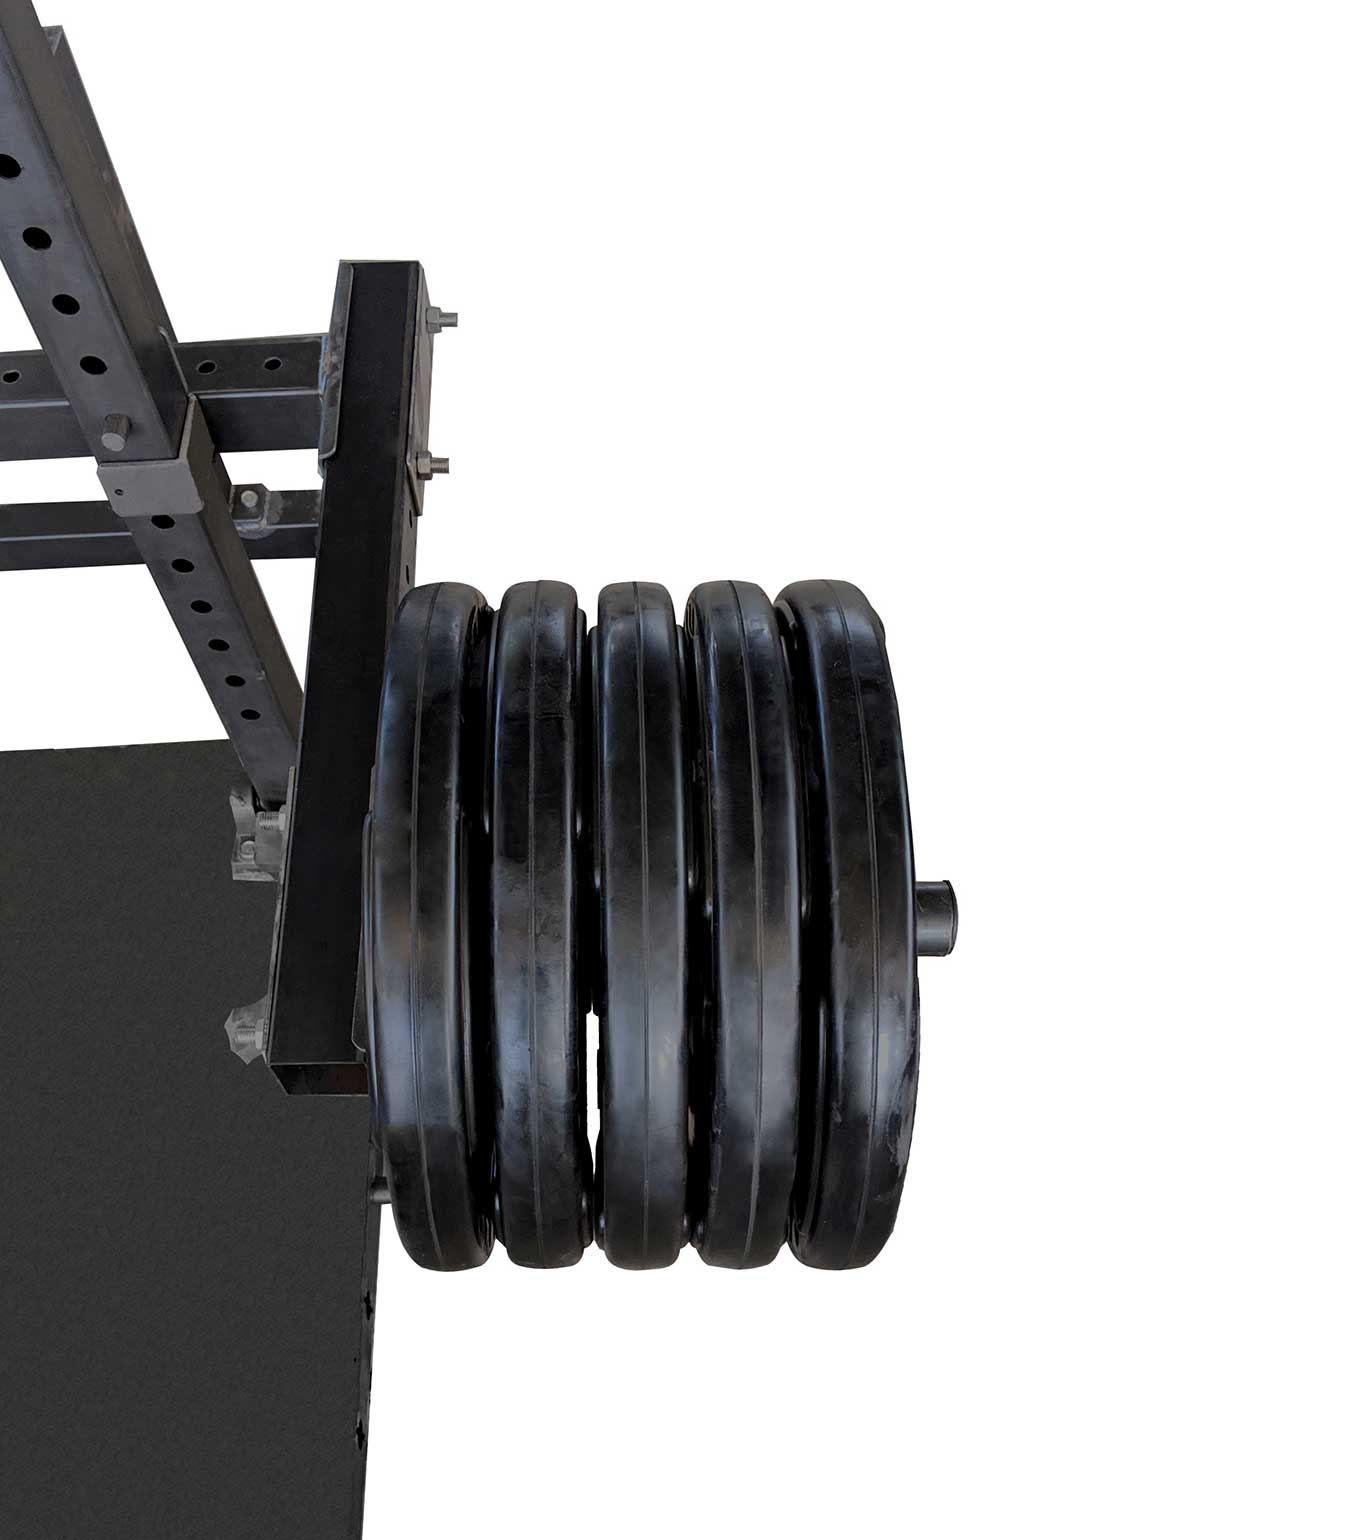 Belt Squat Machine 2.0 by B.o.S.